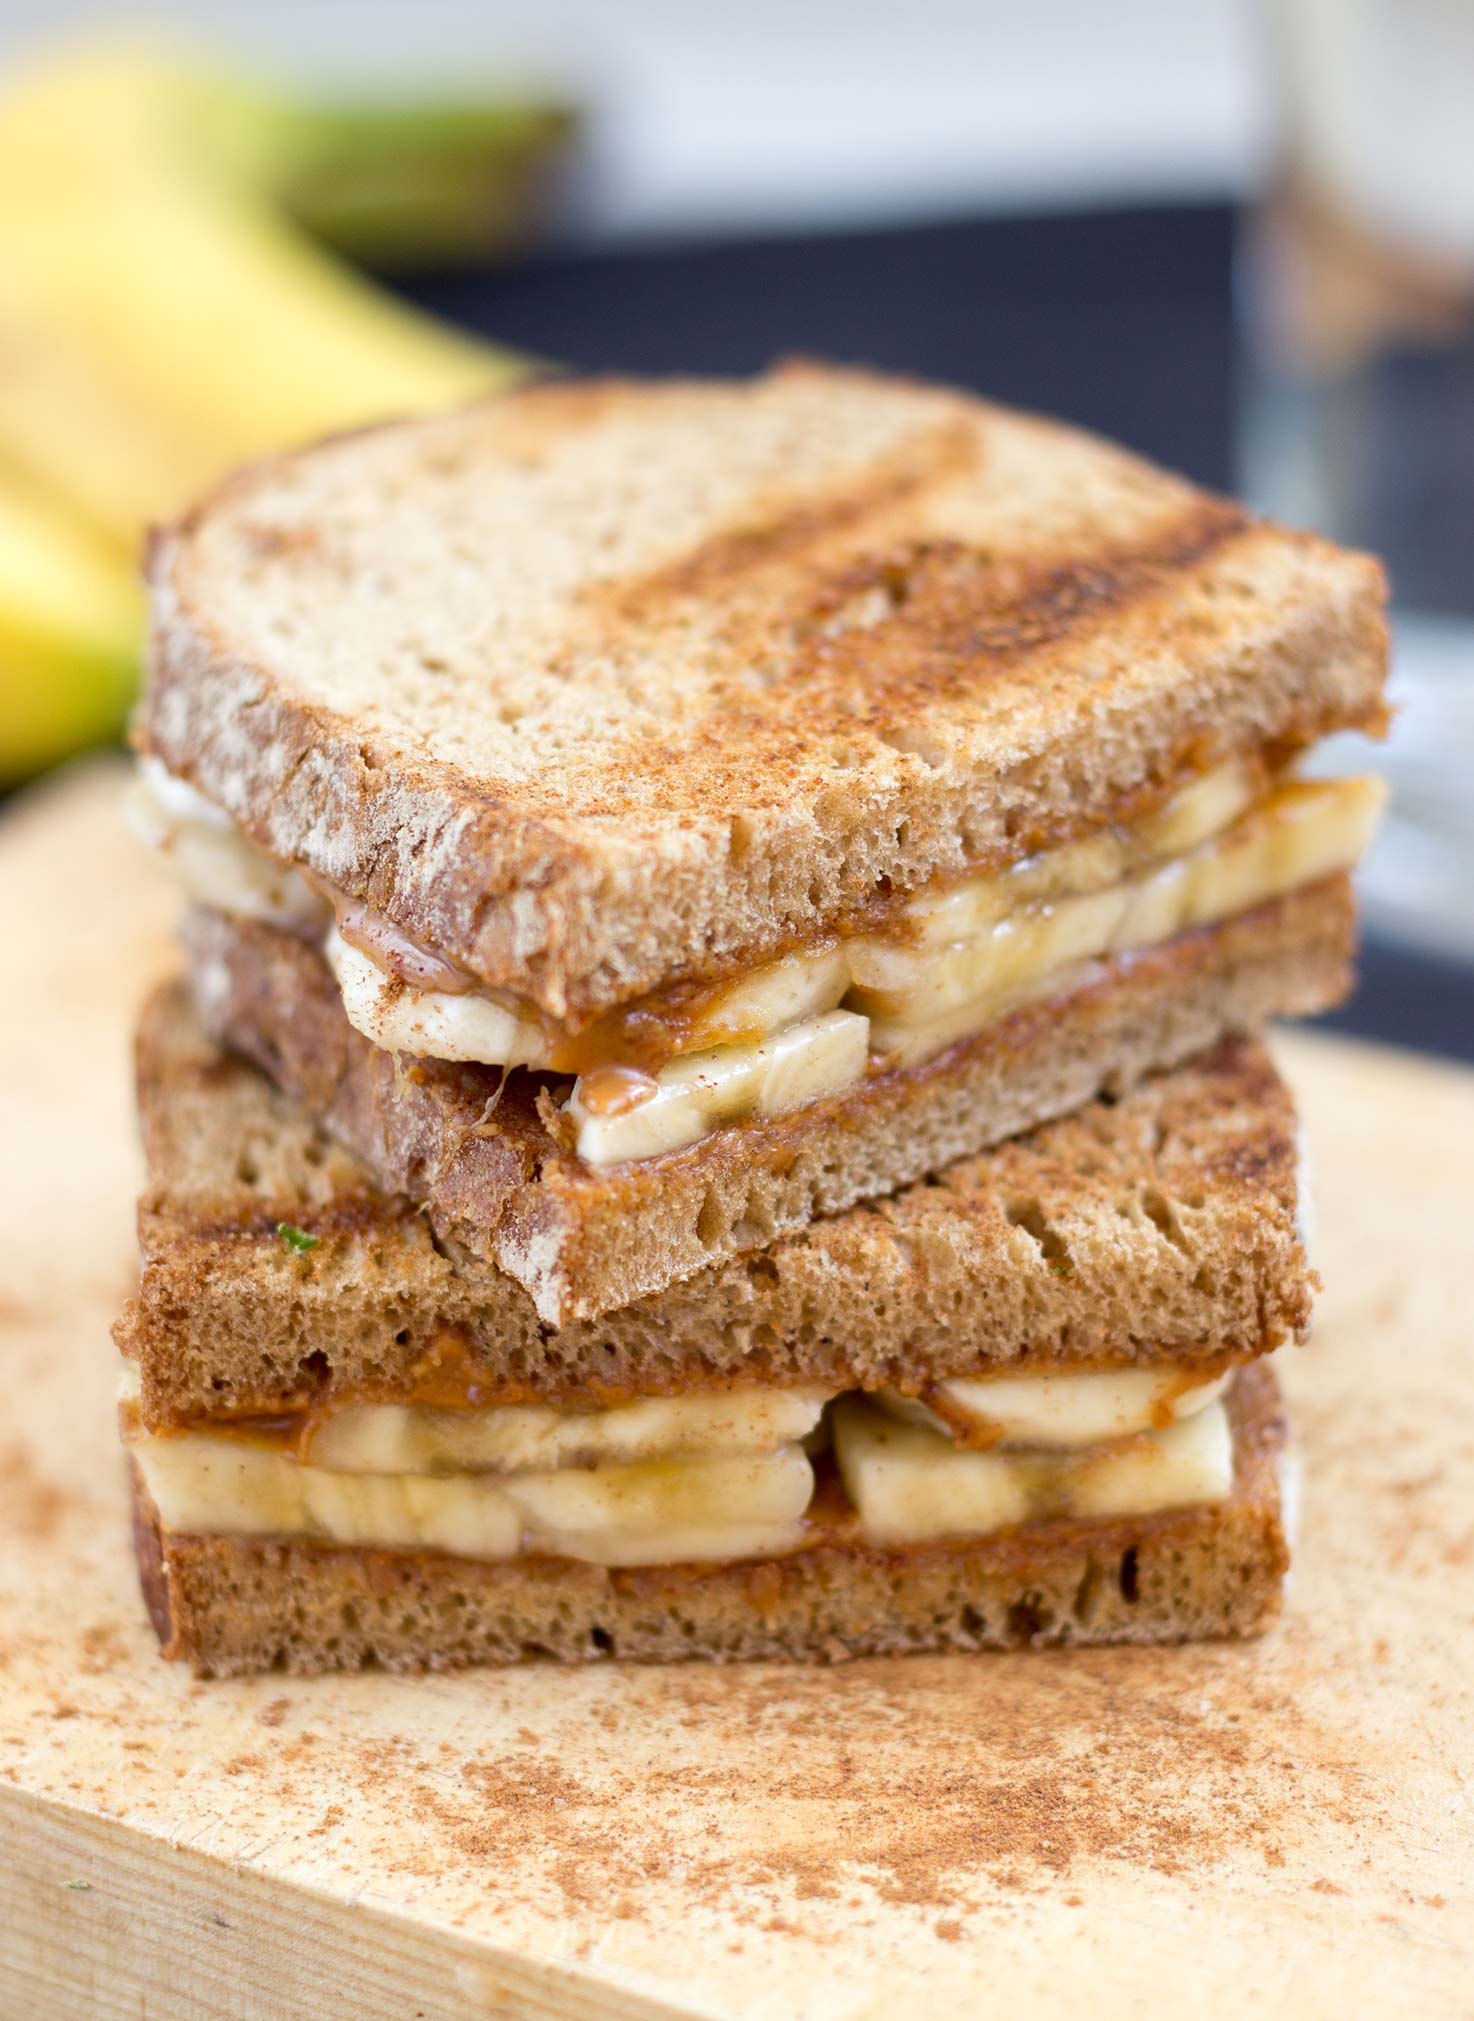 High Protein Anti Hangover Peanut Butter And Banana Sandwich Hurry The Food Up